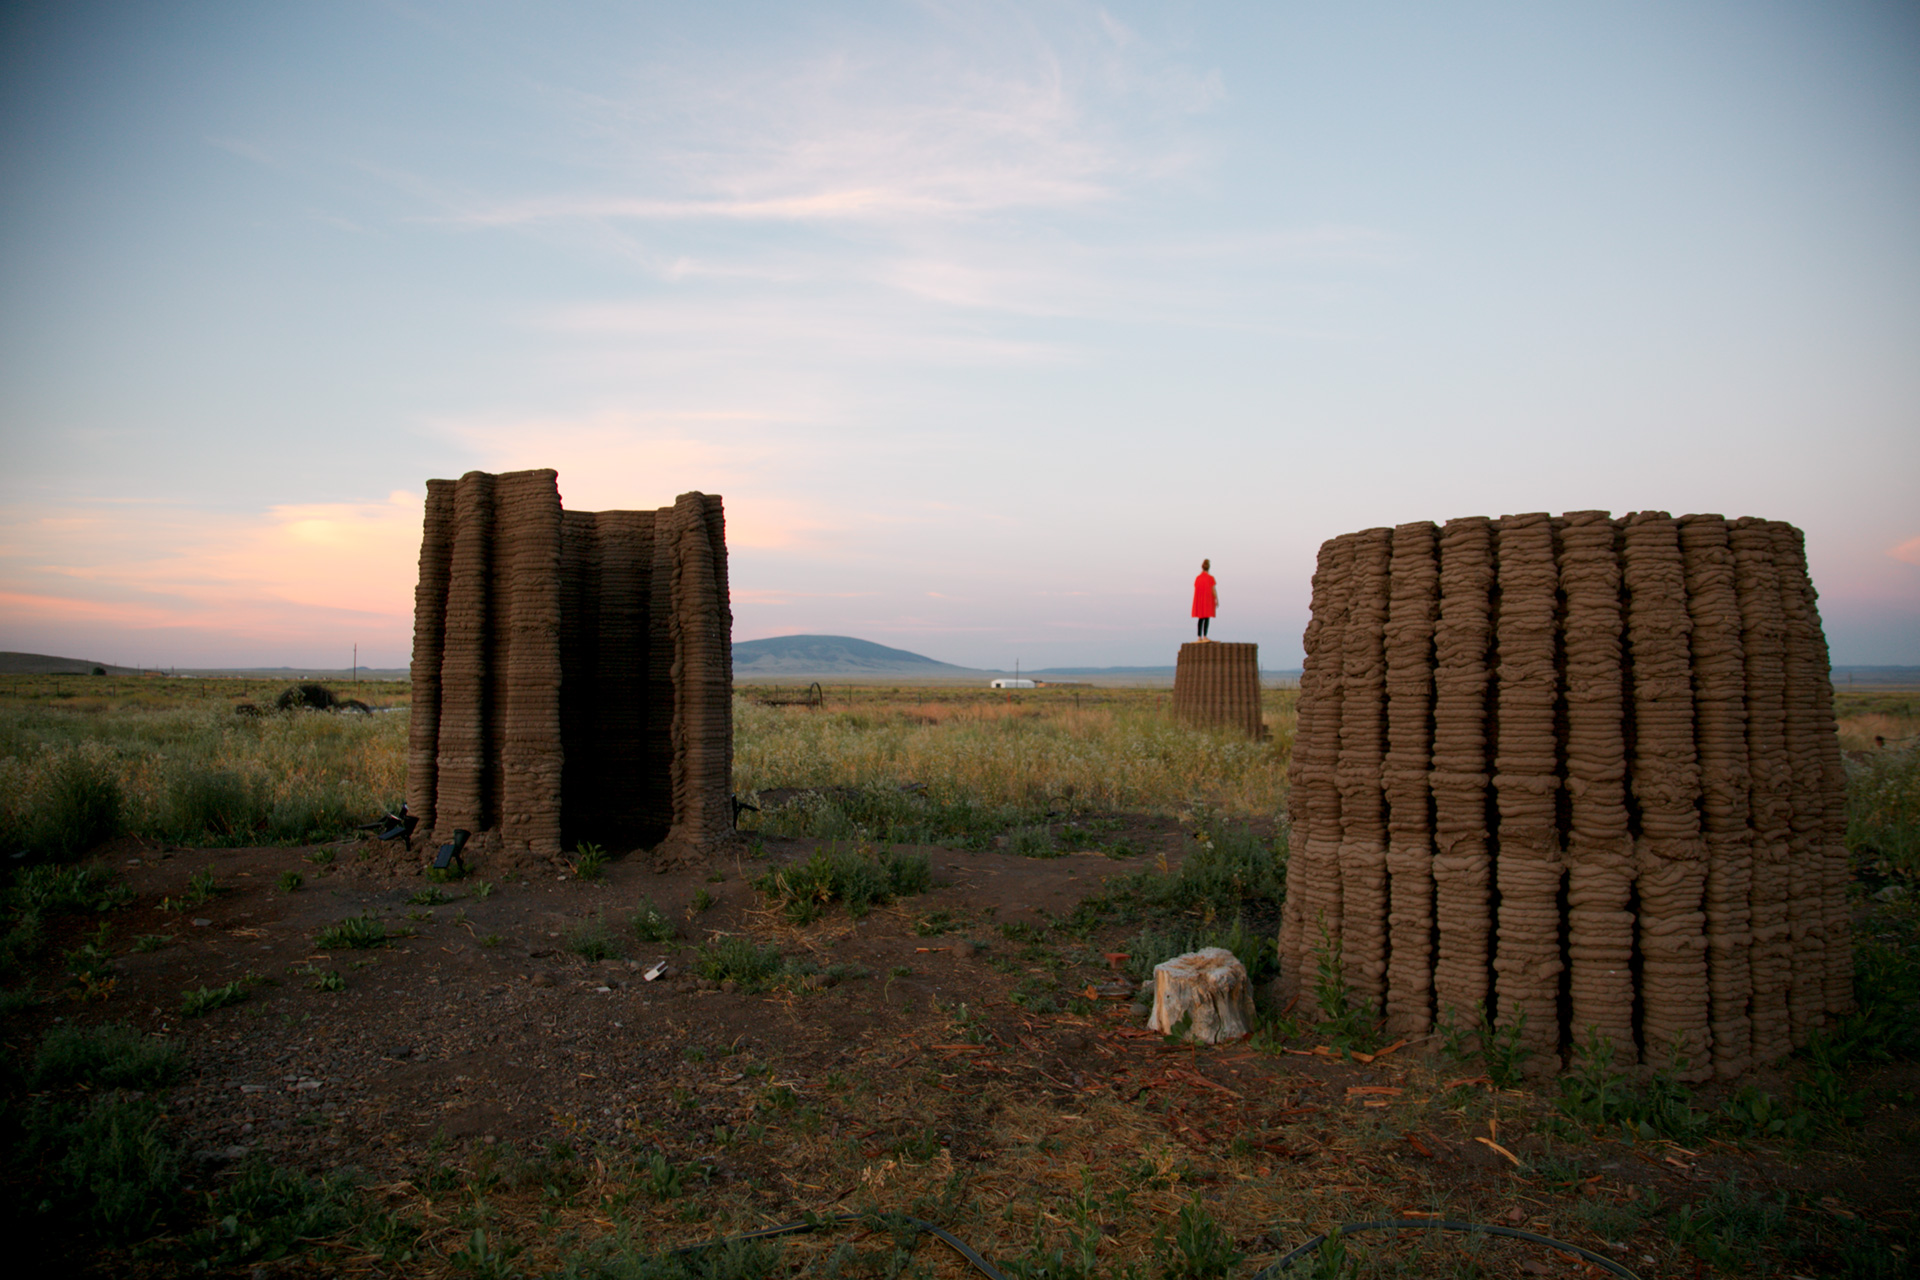 The project created four prototypes of mud structures exploring possibilities of 3D printed low-cost ecological construction | Mud Frontiers | Emerging Objects | STIRworld